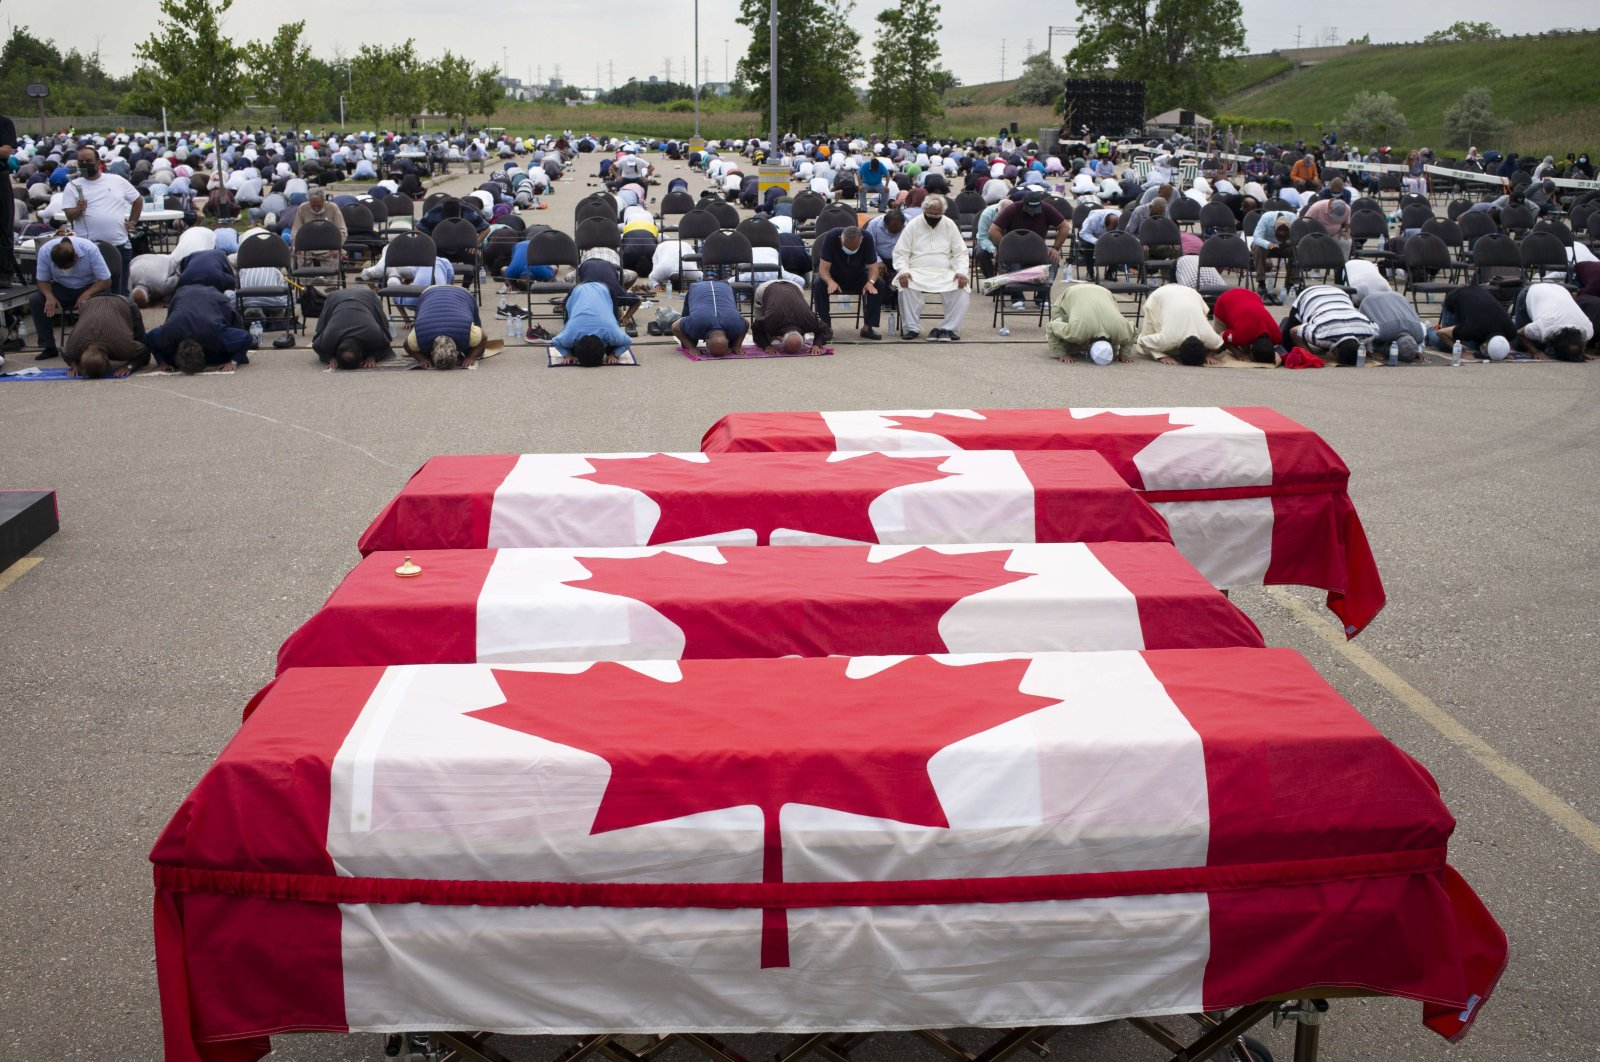 Mourners and supporters gather for a public funeral for members of the Afzaal family at the Islamic Centre of Southwest Ontario in London, Canada, June 12, 2021. (AFP Photo)